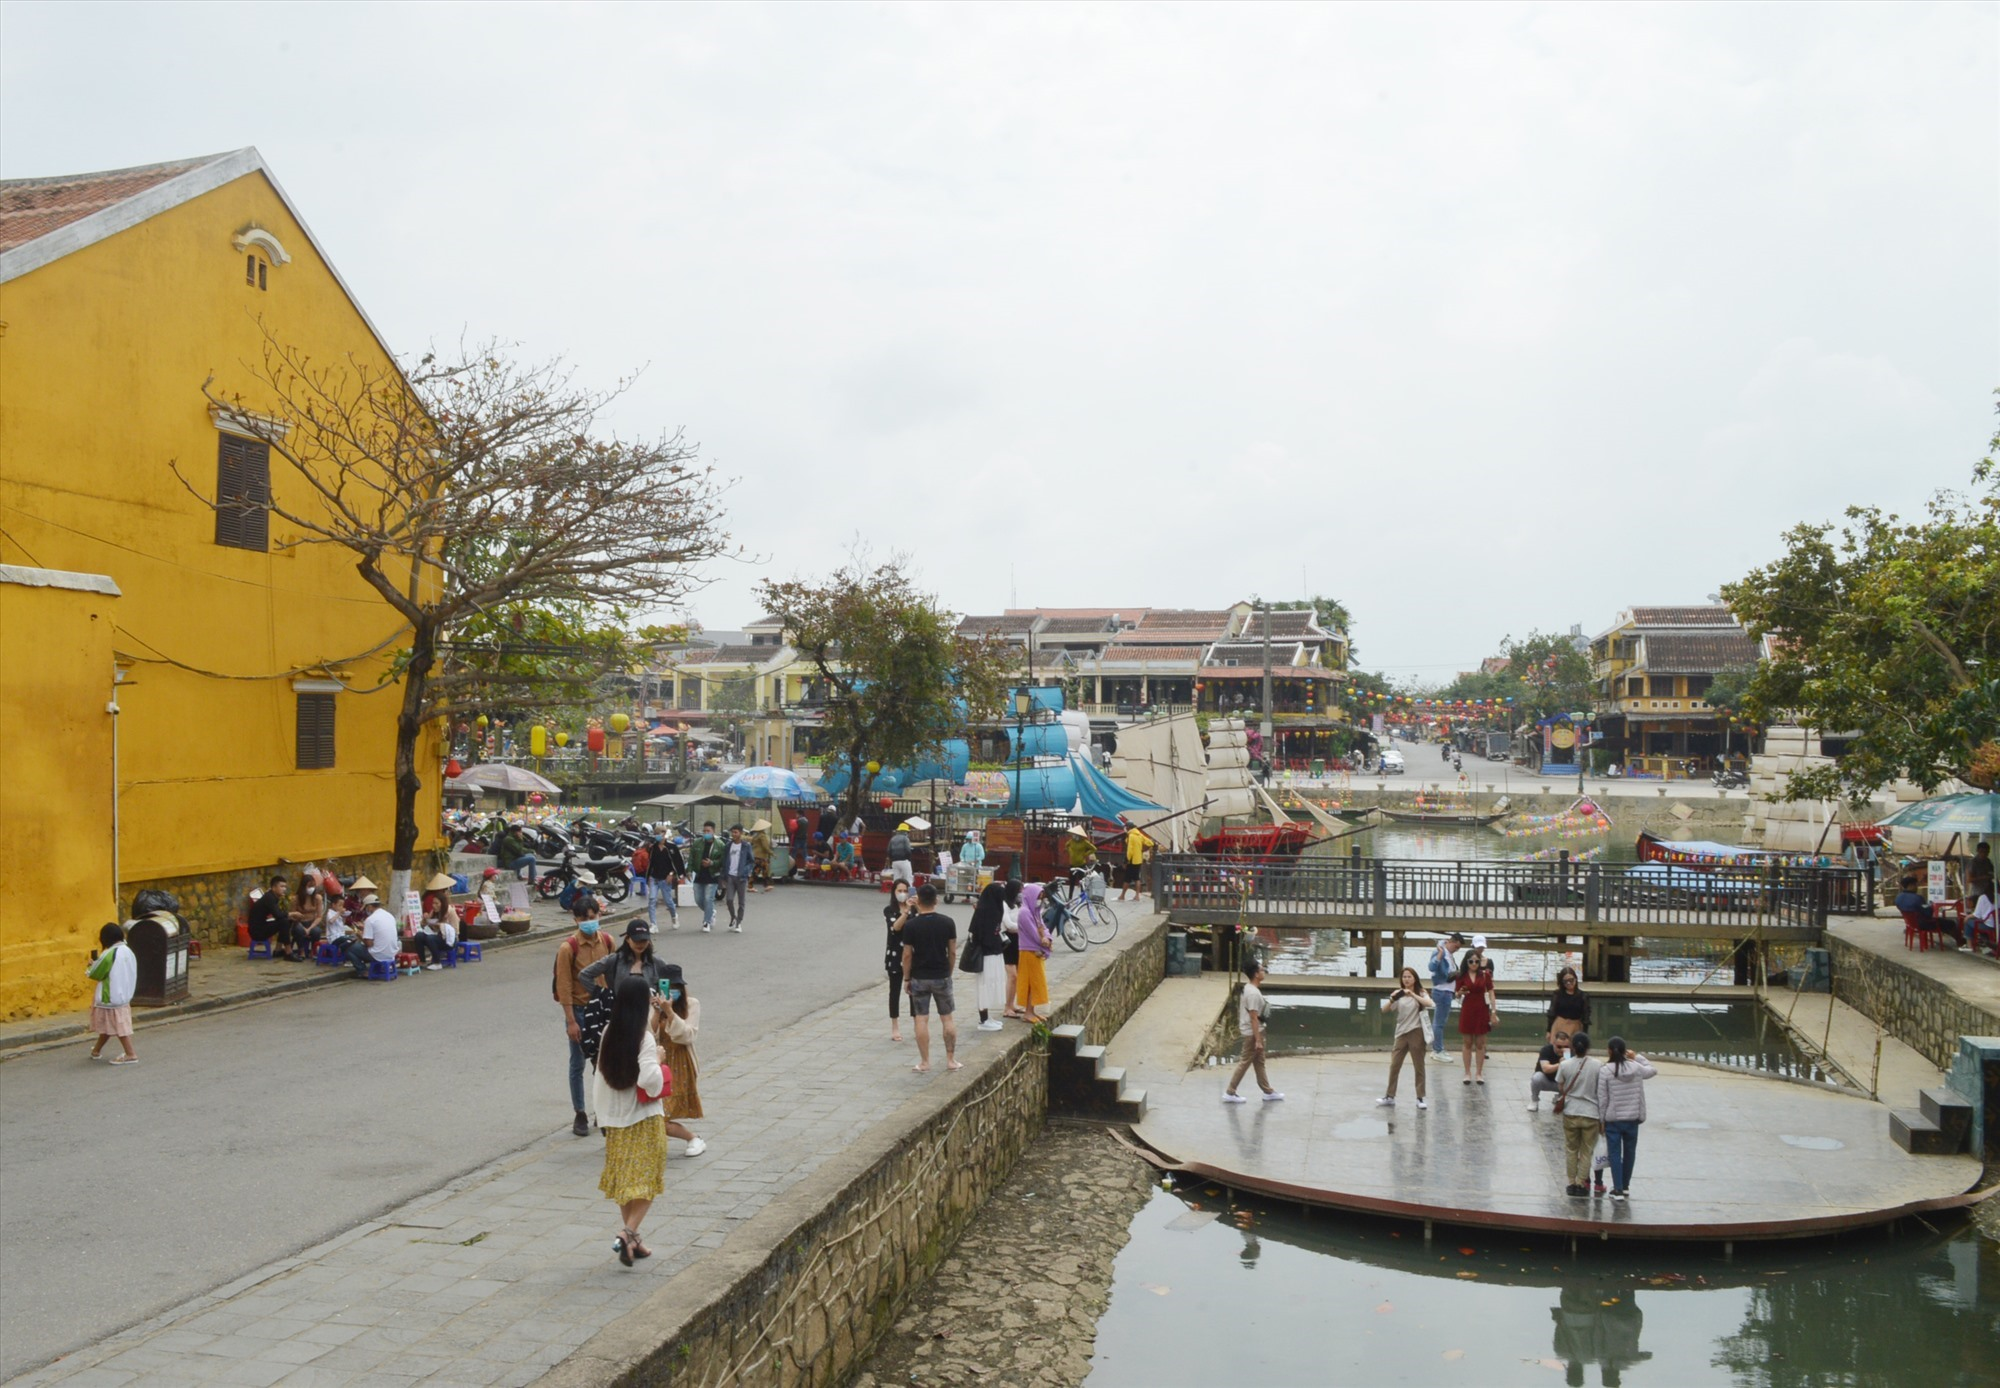 More visitors to Hoi An ancient town